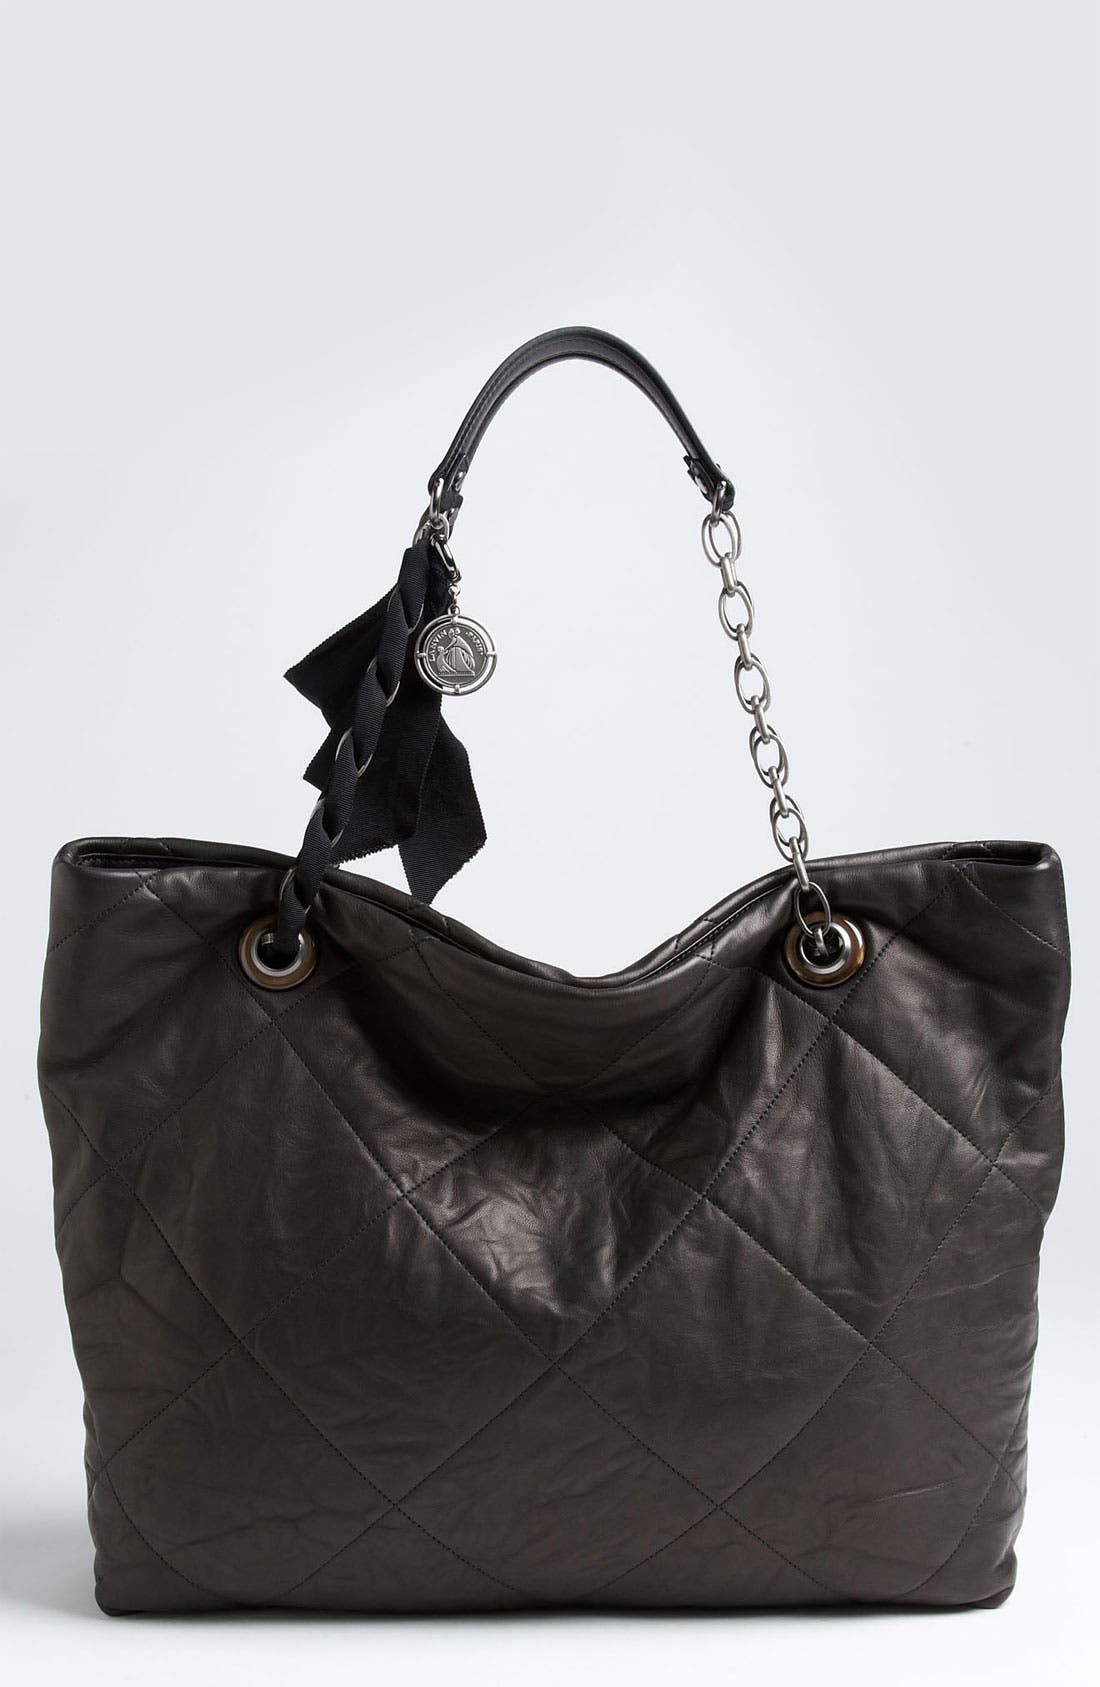 Alternate Image 1 Selected - Lanvin 'Amalia Cabas - Large' Leather Tote